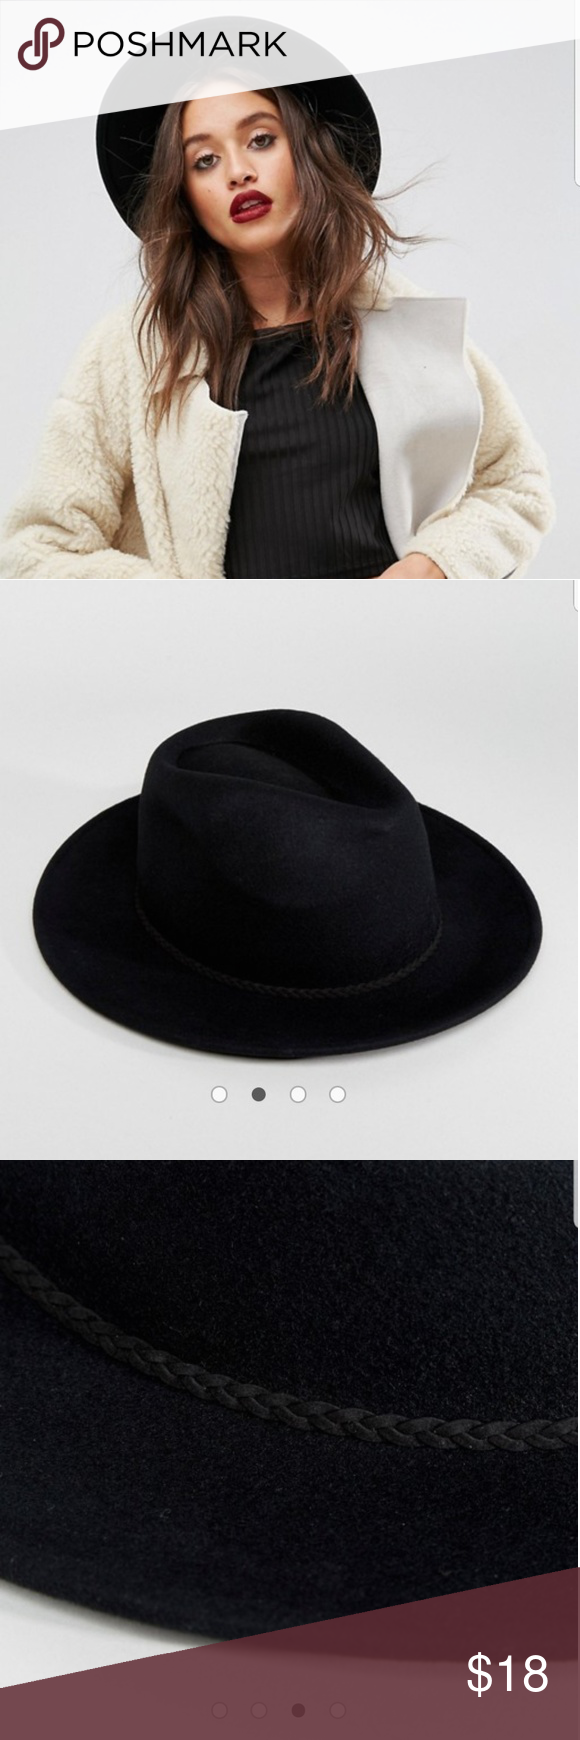 560f8d5a ASOS Black Panama Hat Never got to wear it! ASOS DESIGN felt panama hat  with plait braid trim with size adjuster PRODUCT DETAILS Pure felt wool  Pinched top ...